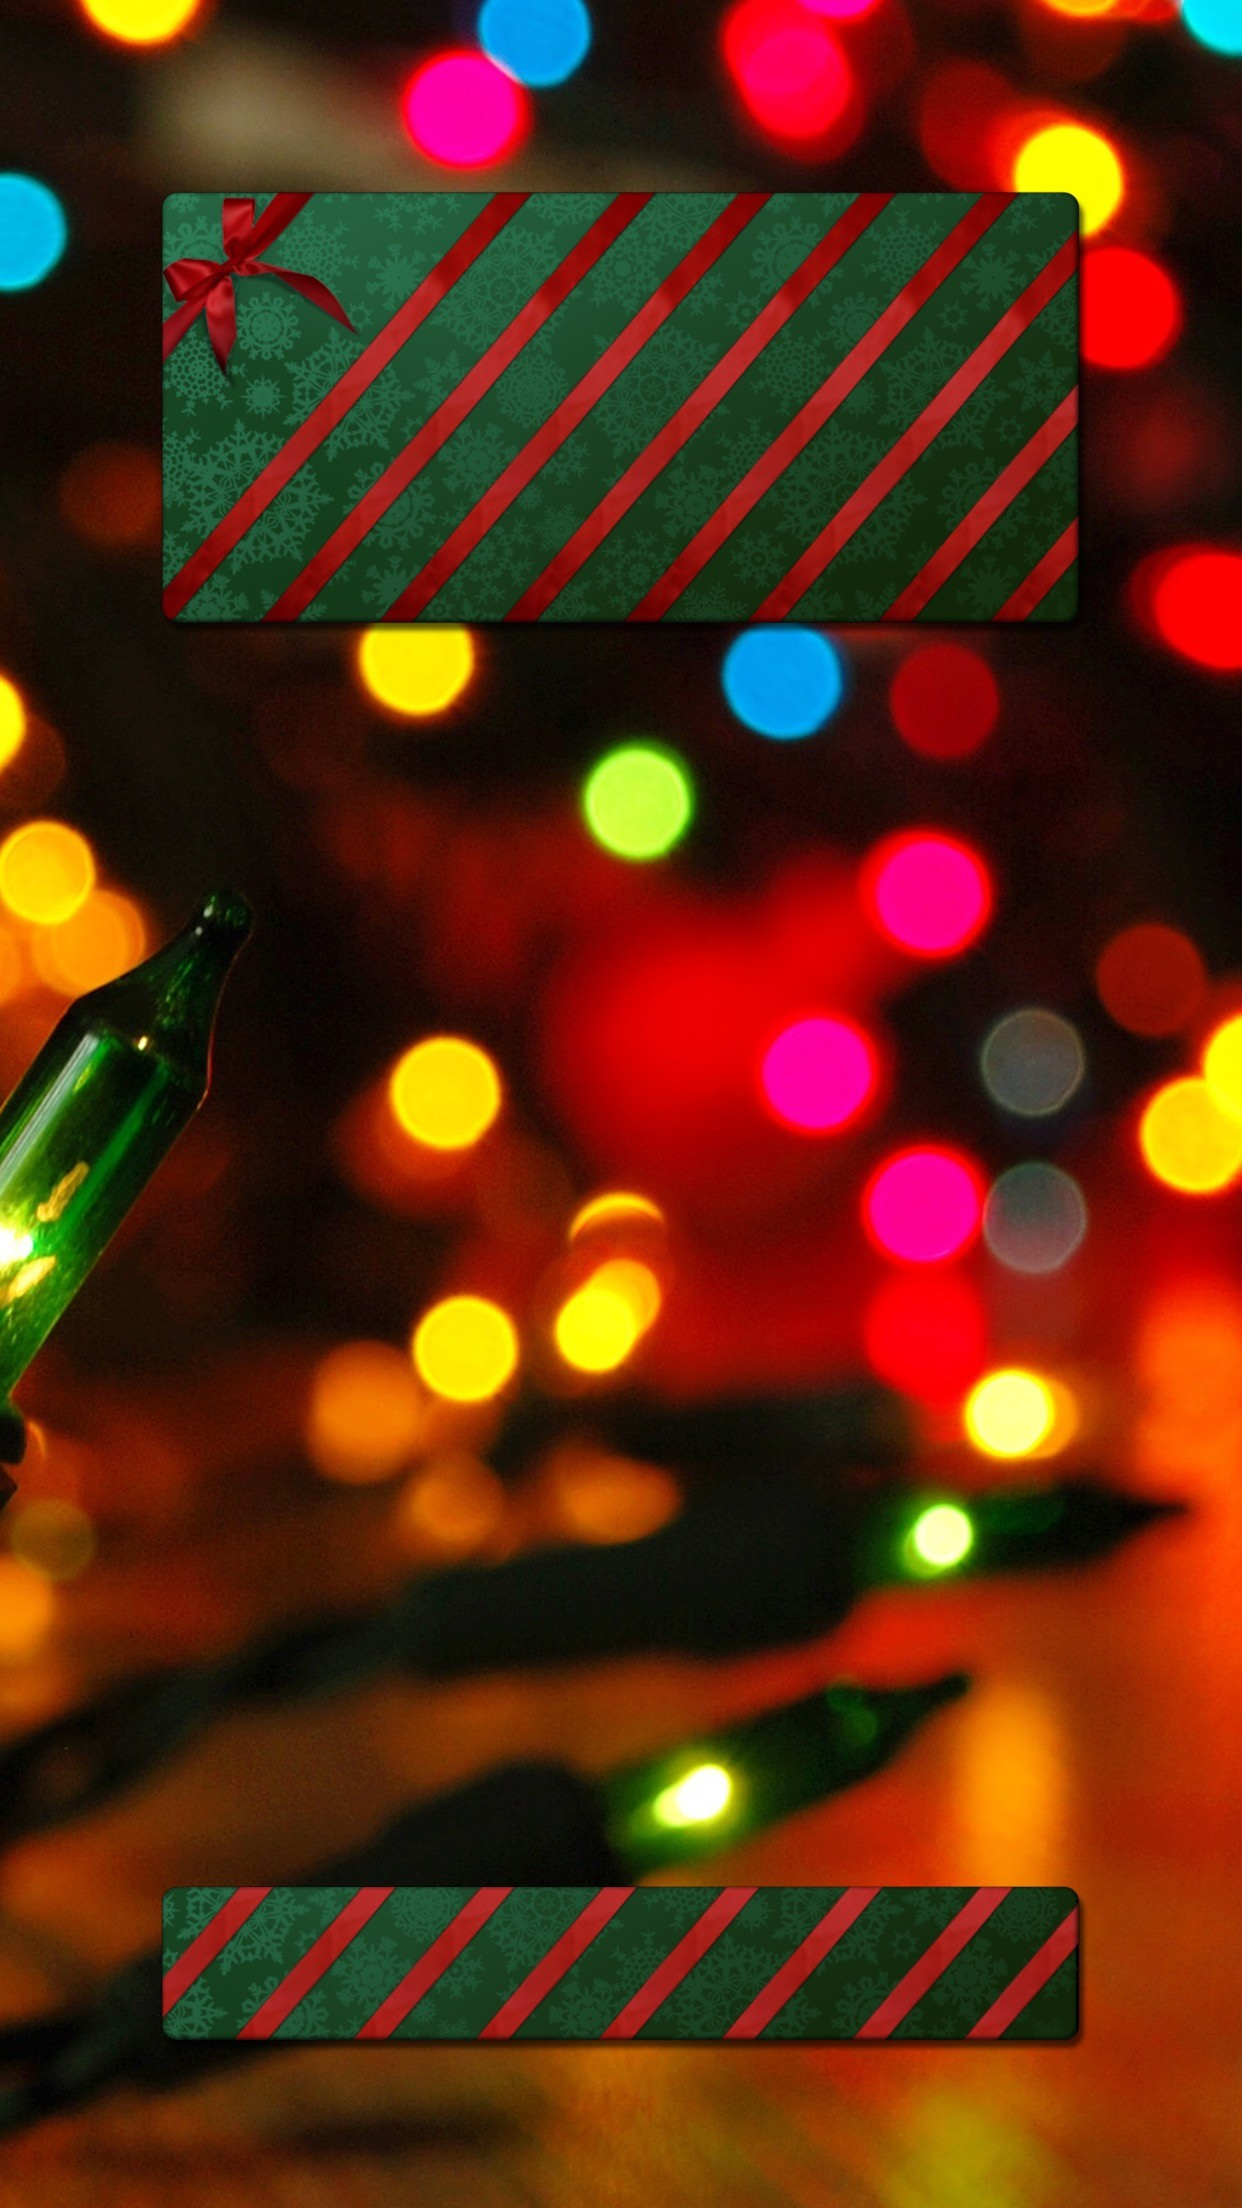 Christmas Holiday Lights Sweets Multicolour HD iPhone 6 Plus Lock Screen